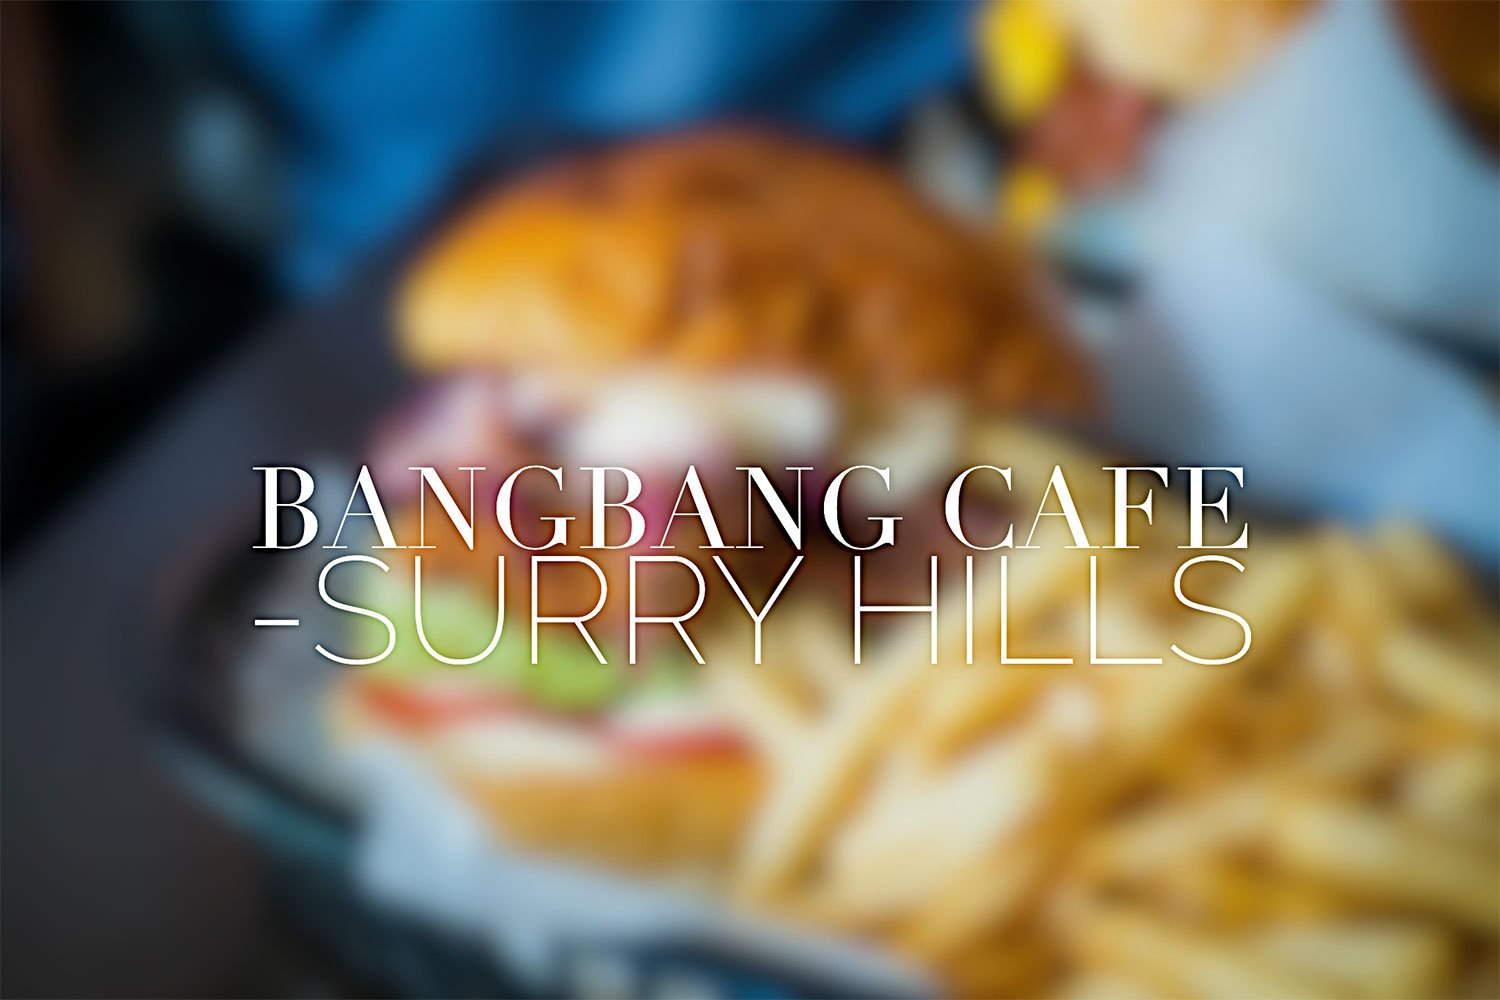 BangBang Cafe, Surry Hills. Sydney Food Blog Review